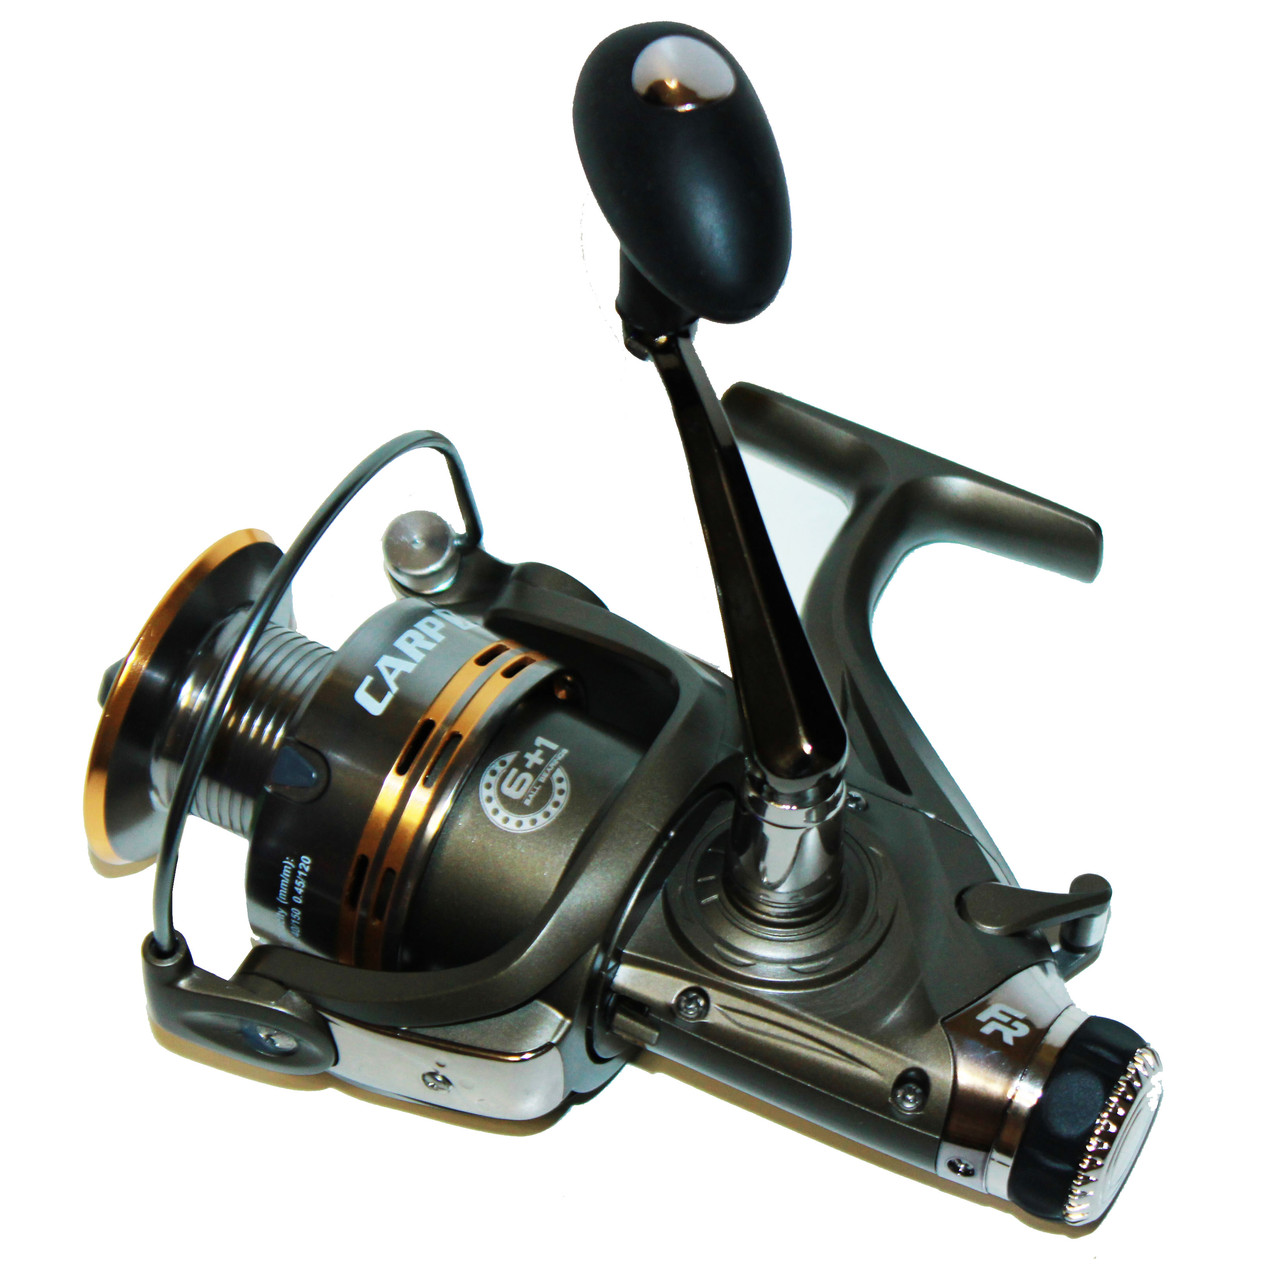 Катушка Fishing ROI Carp XT 6000 с бейтраннером